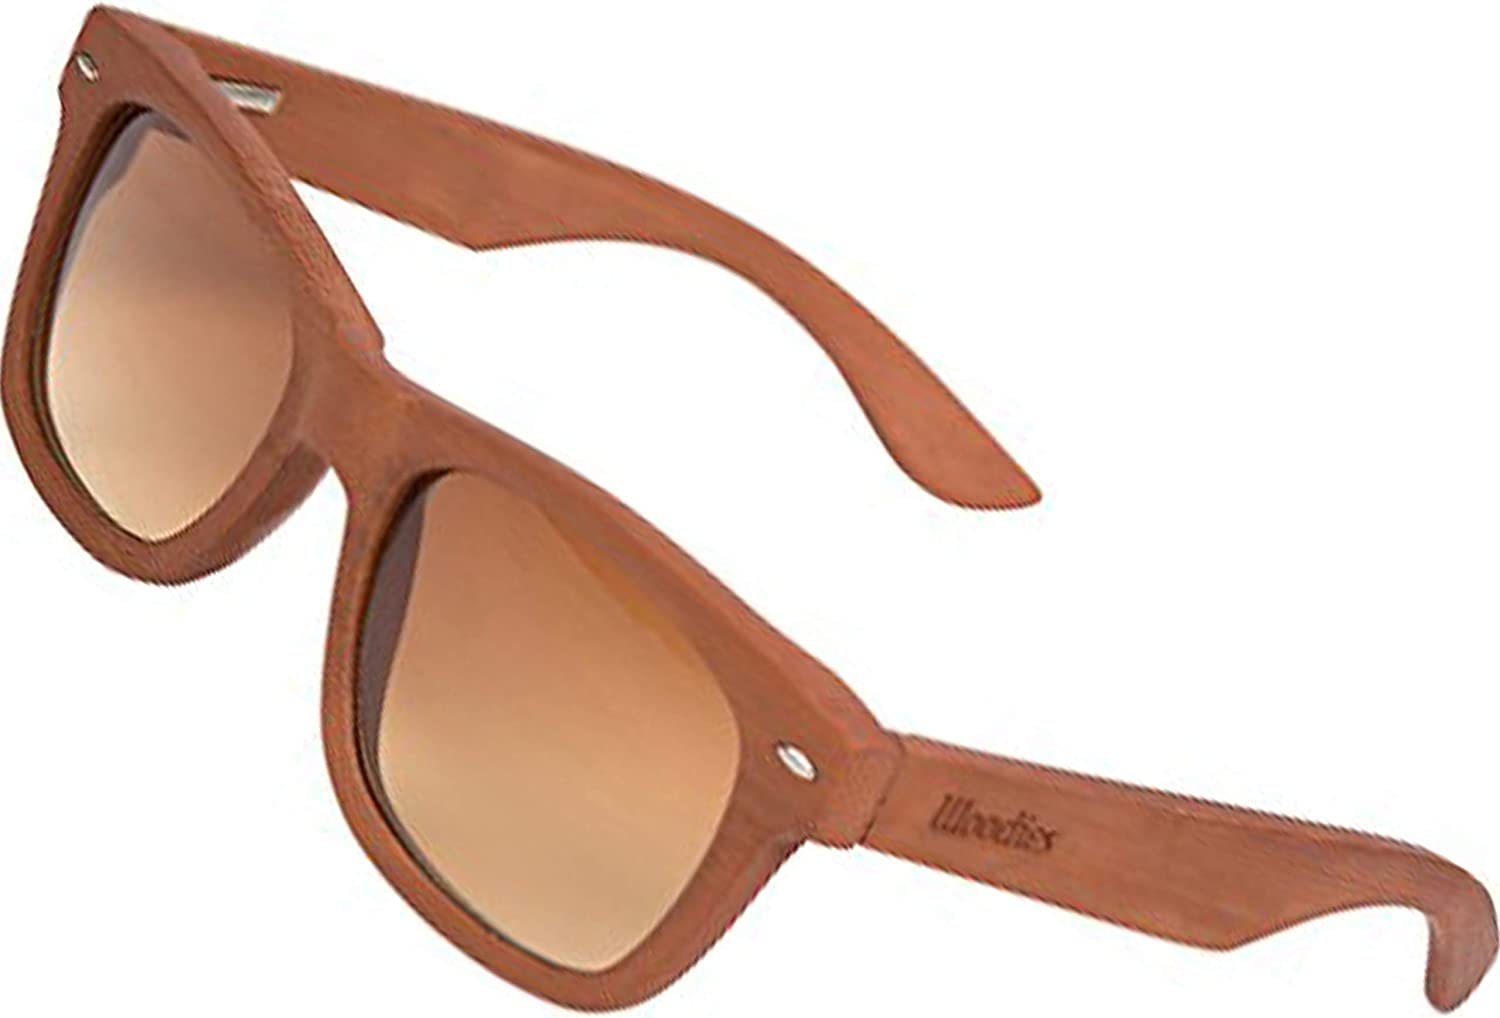 WOODIES Polarized Dark Grain Full Bamboo Wood Sunglasses for Men and Women | Polarized Lenses and Real Wooden Frame | 100% UVA/UVB Ray Protection